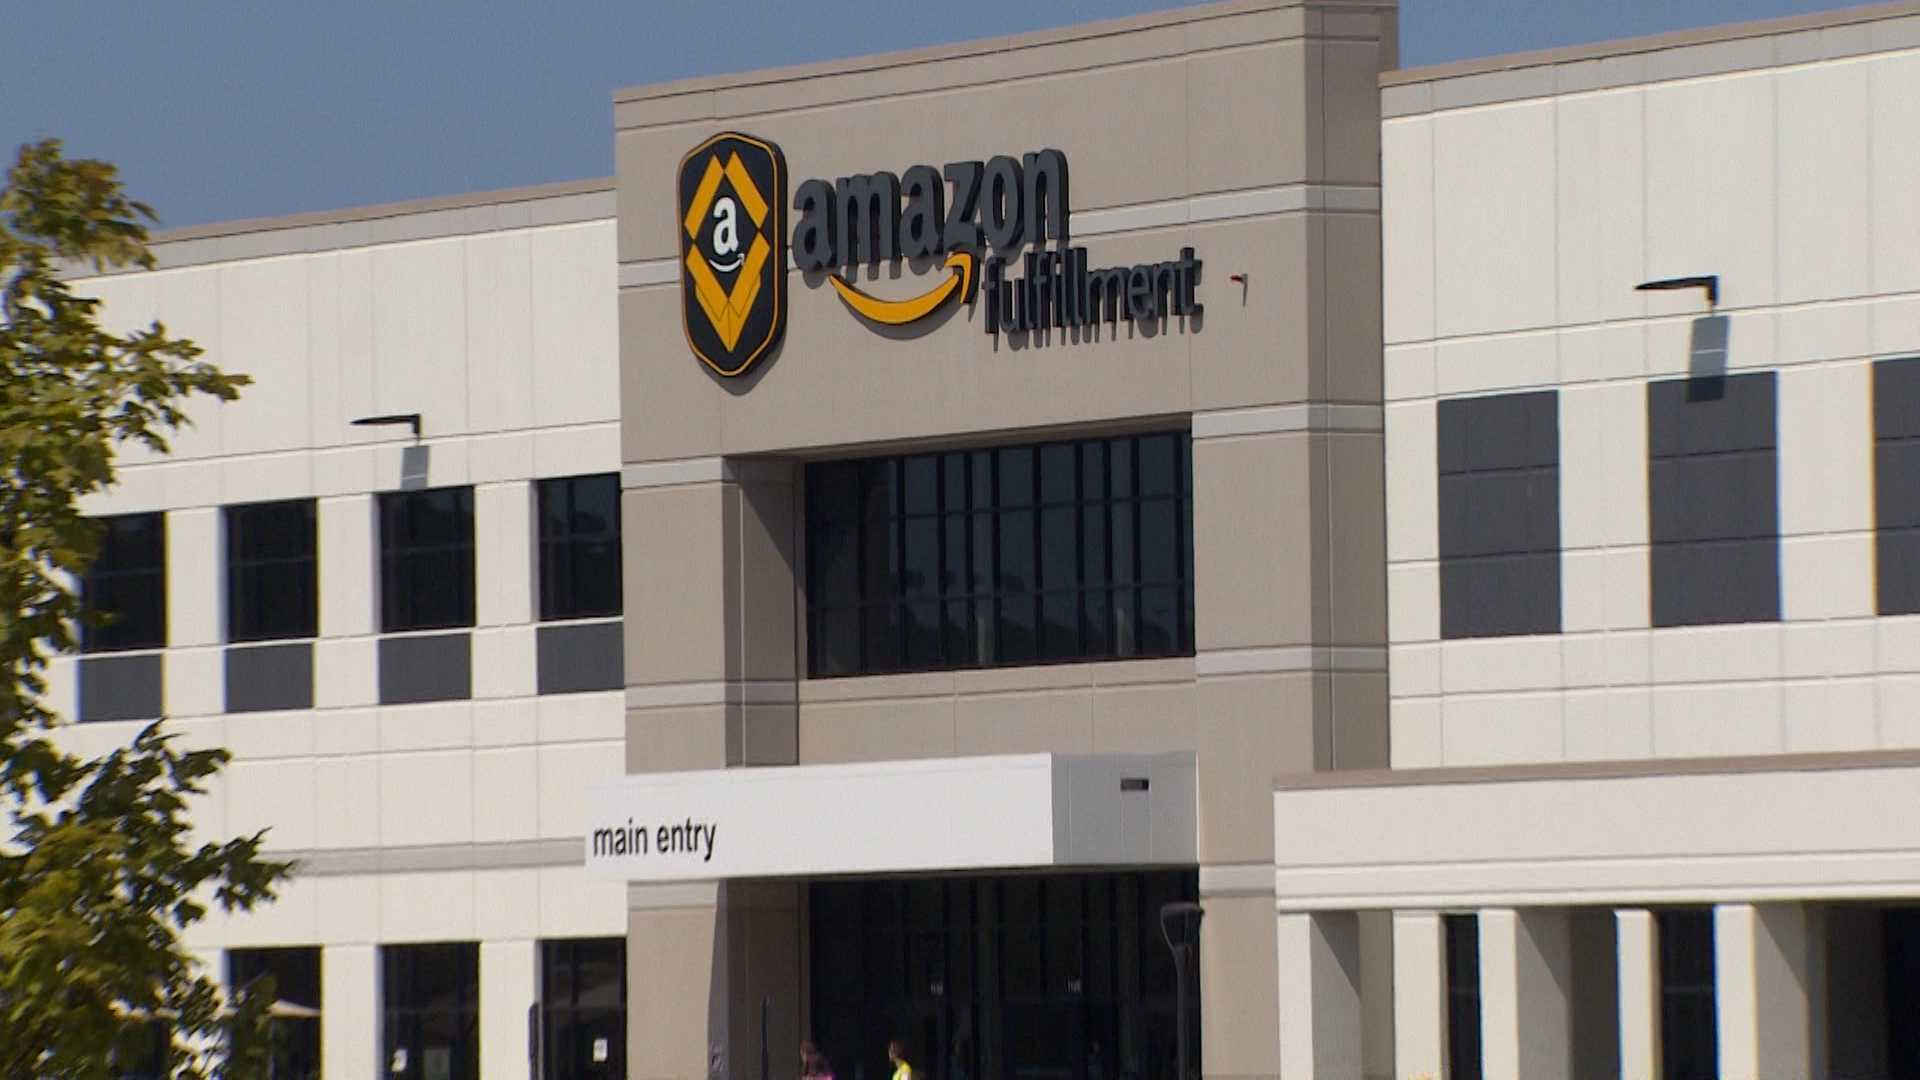 Northeast Ohio's Amazon 'HQ2' bid is in